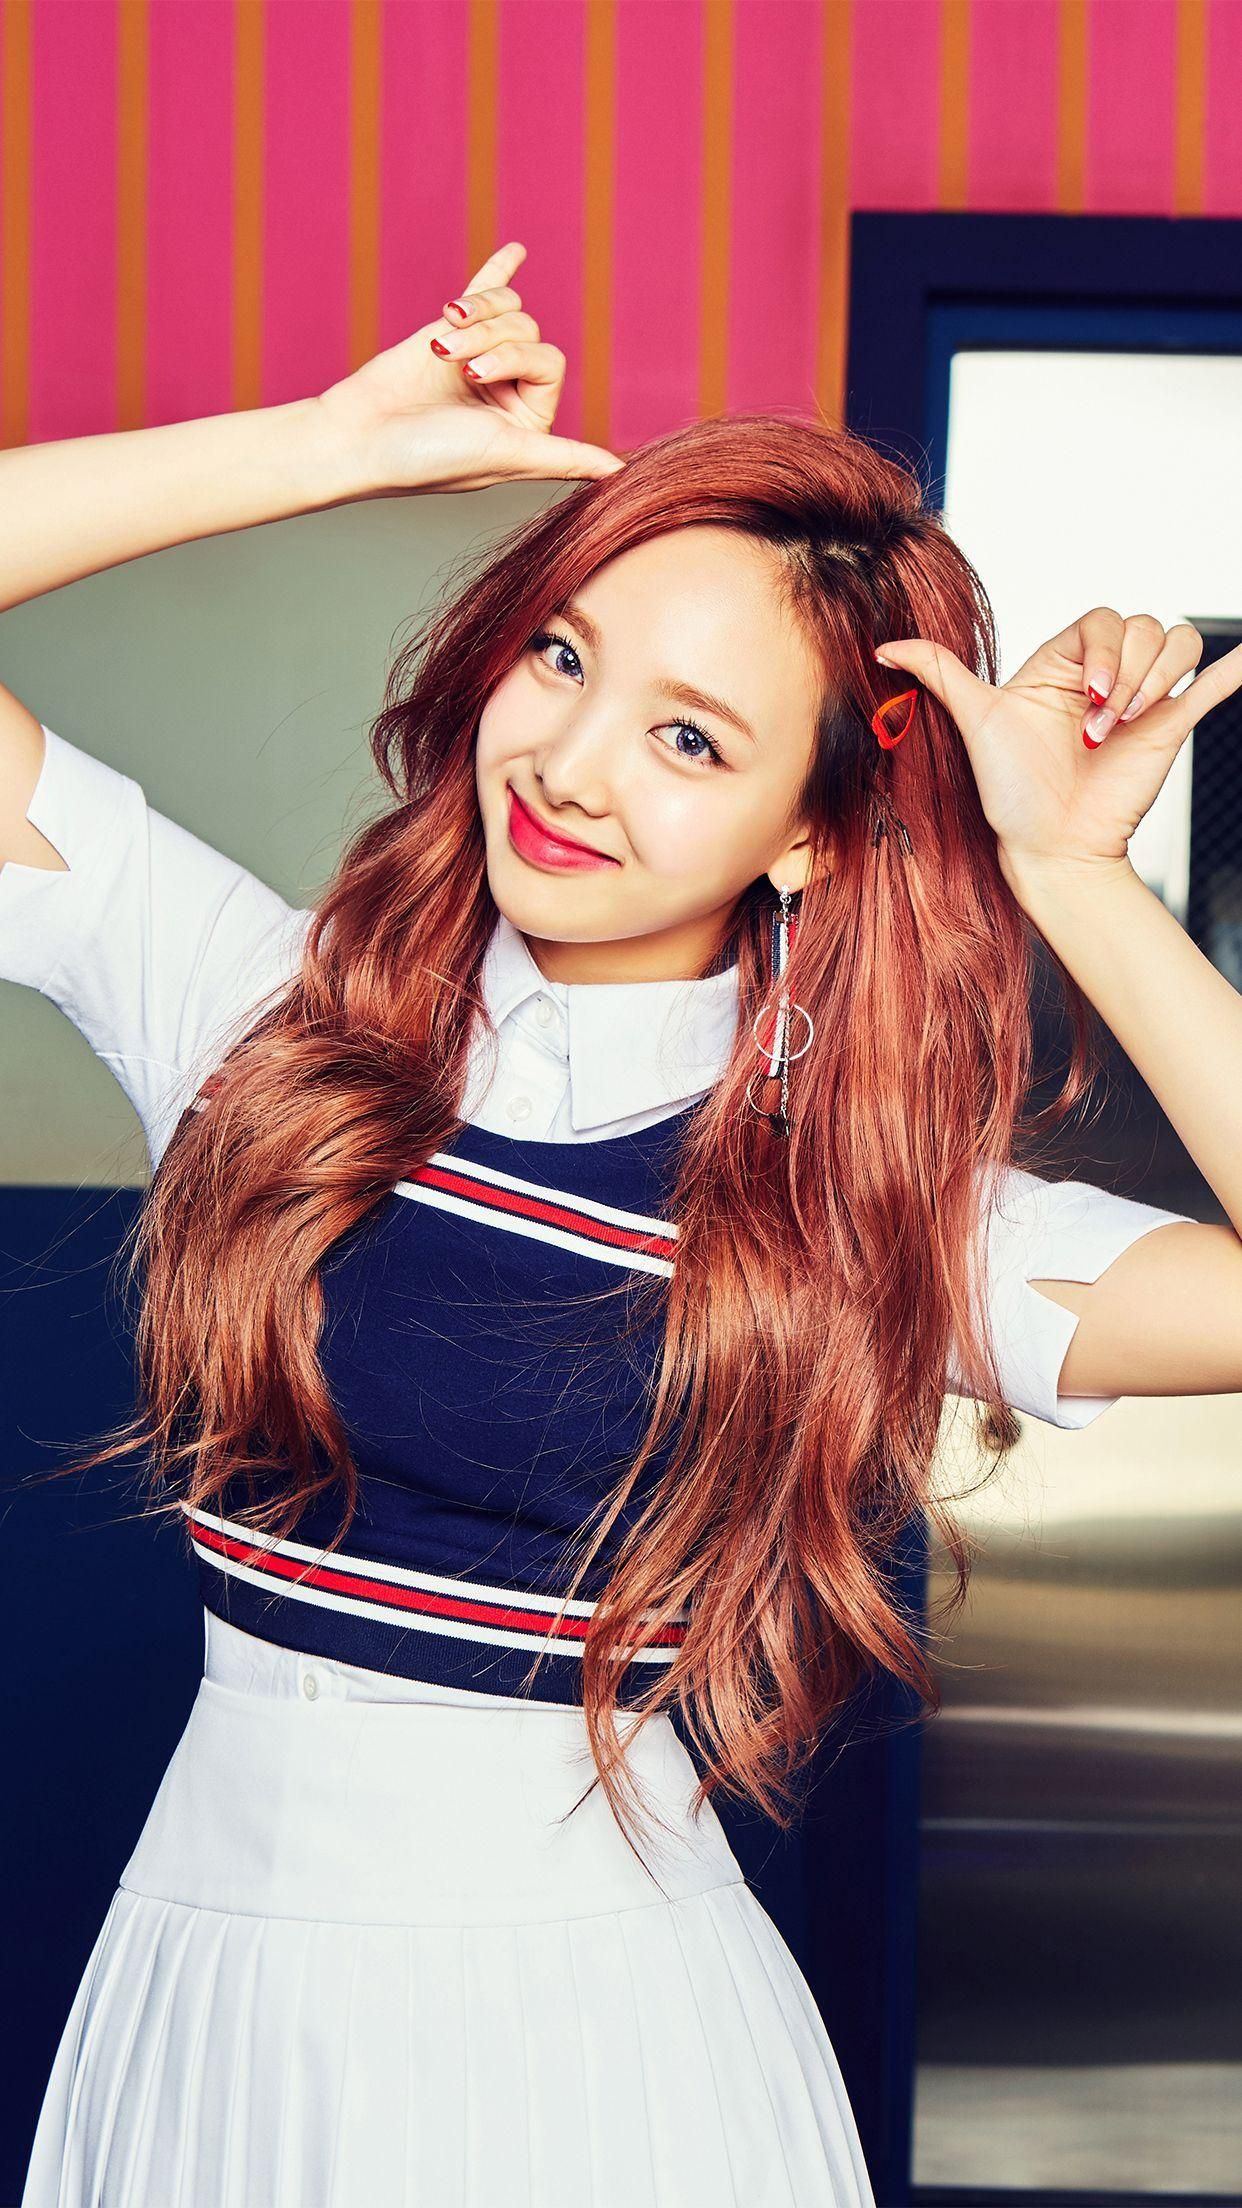 Twice Nayeon Wallpapers Wallpaper Cave 2020